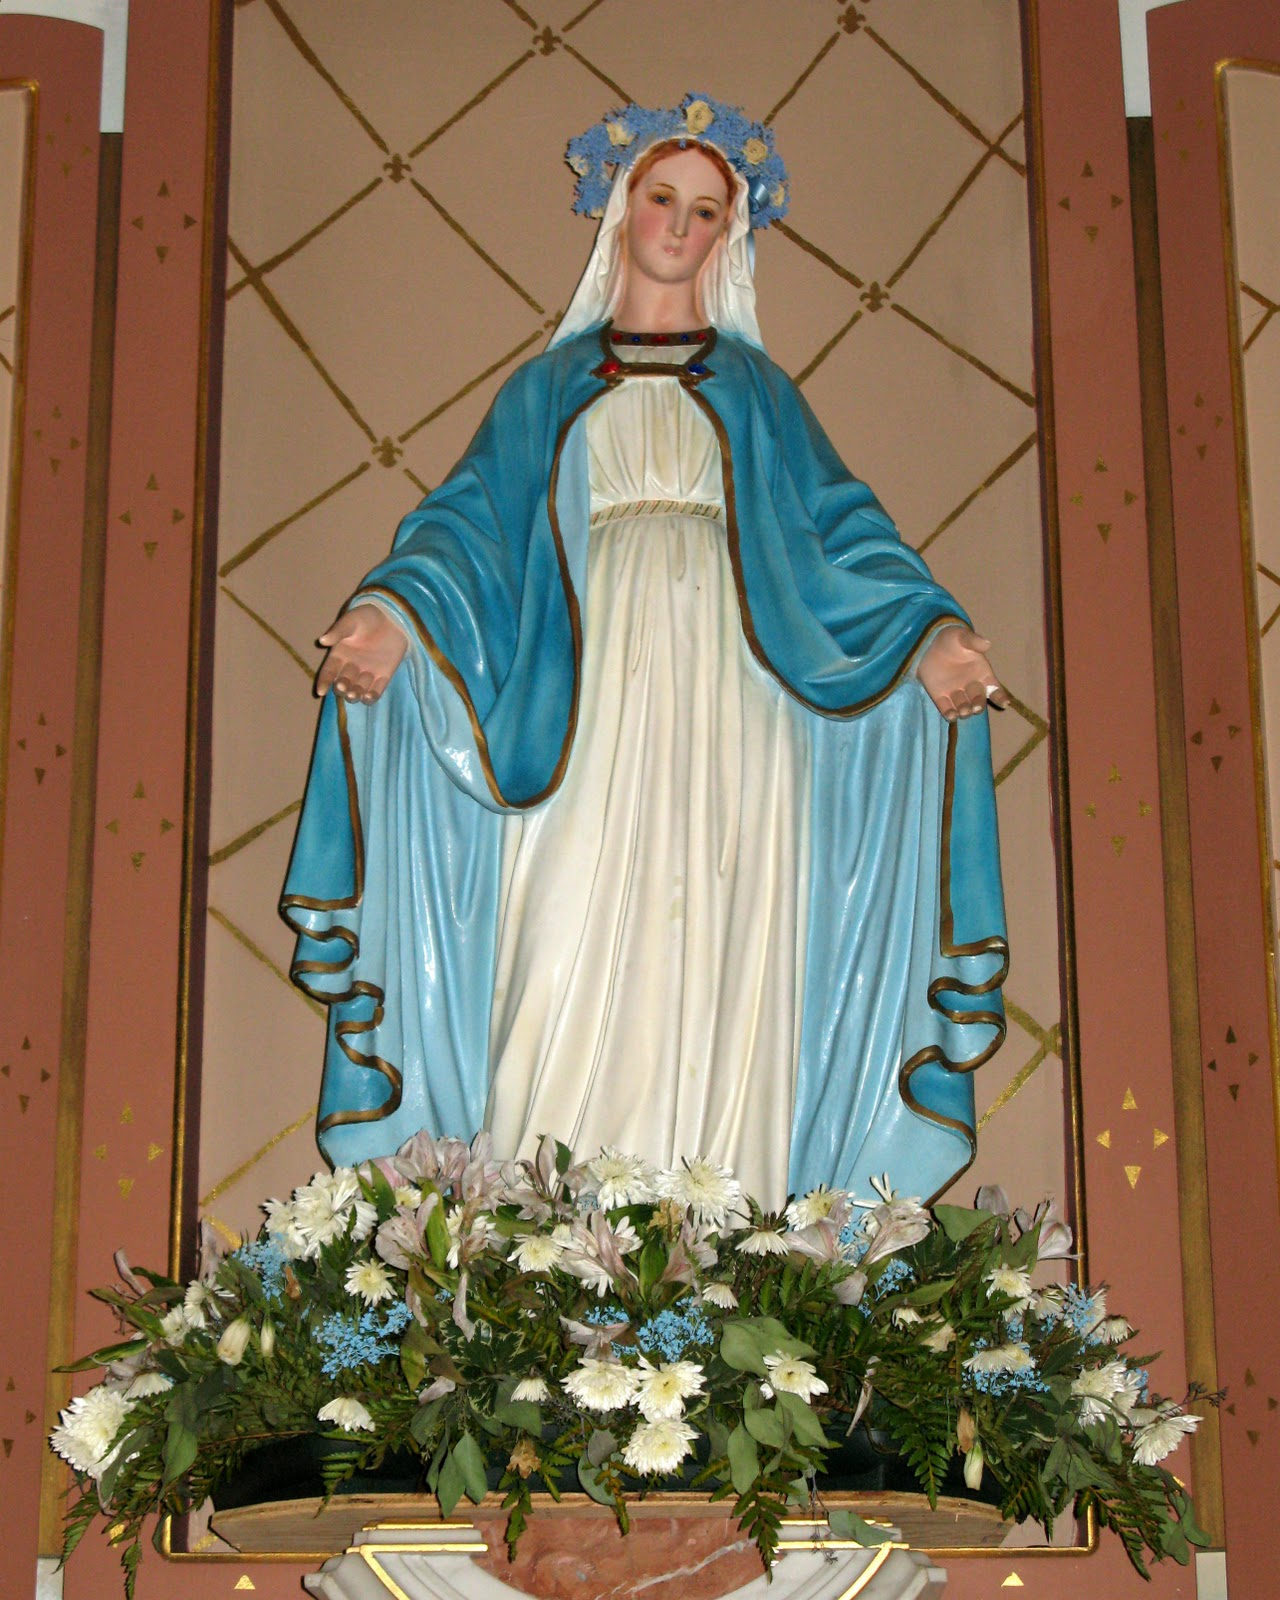 Angels, Wonders, and Miracles of Faith: Our Lady of Medjugorje.